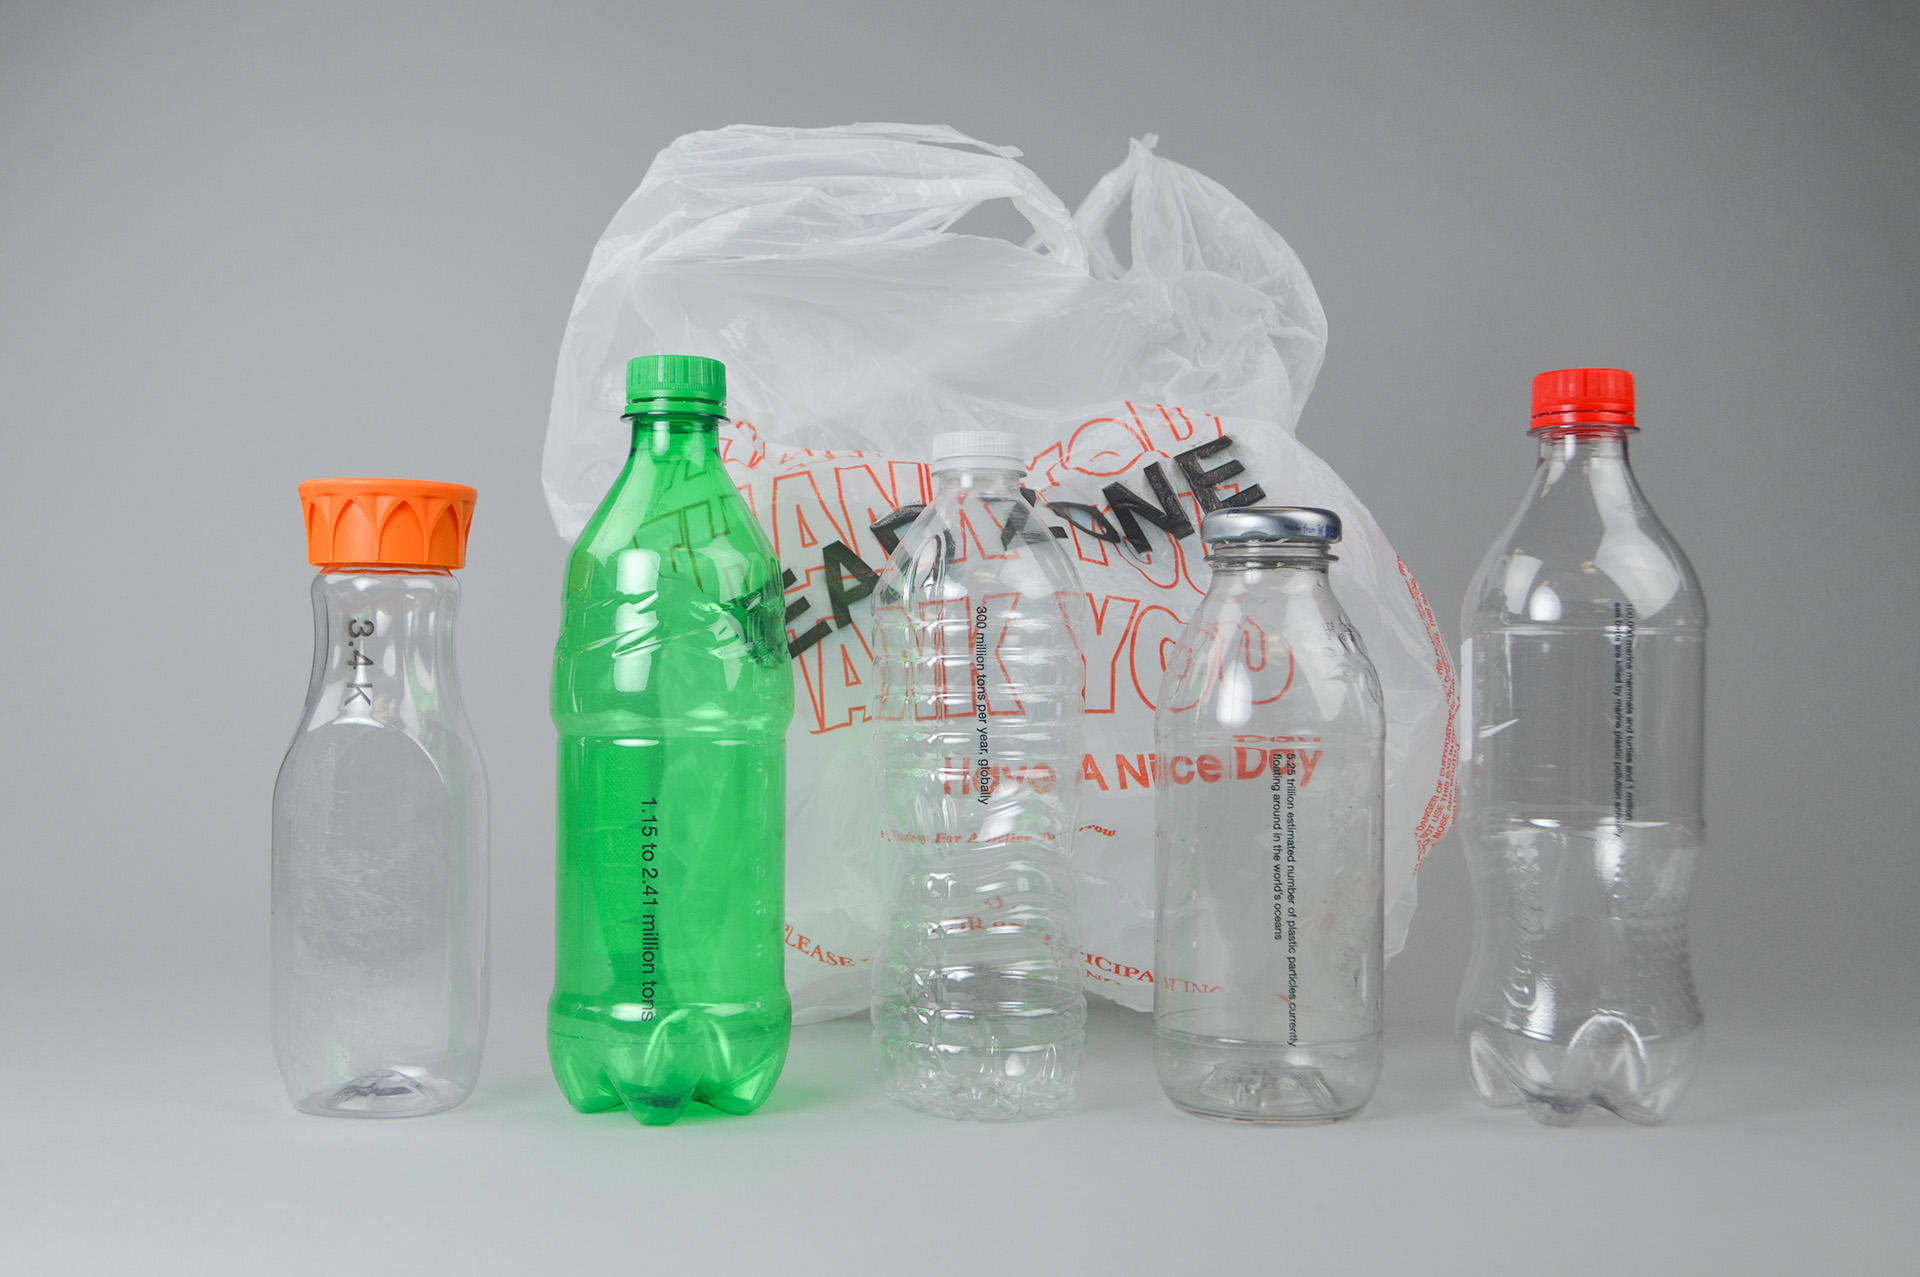 Five plastic bottles with a plastic bag behind them with the text 'Dead Zone' printed on it